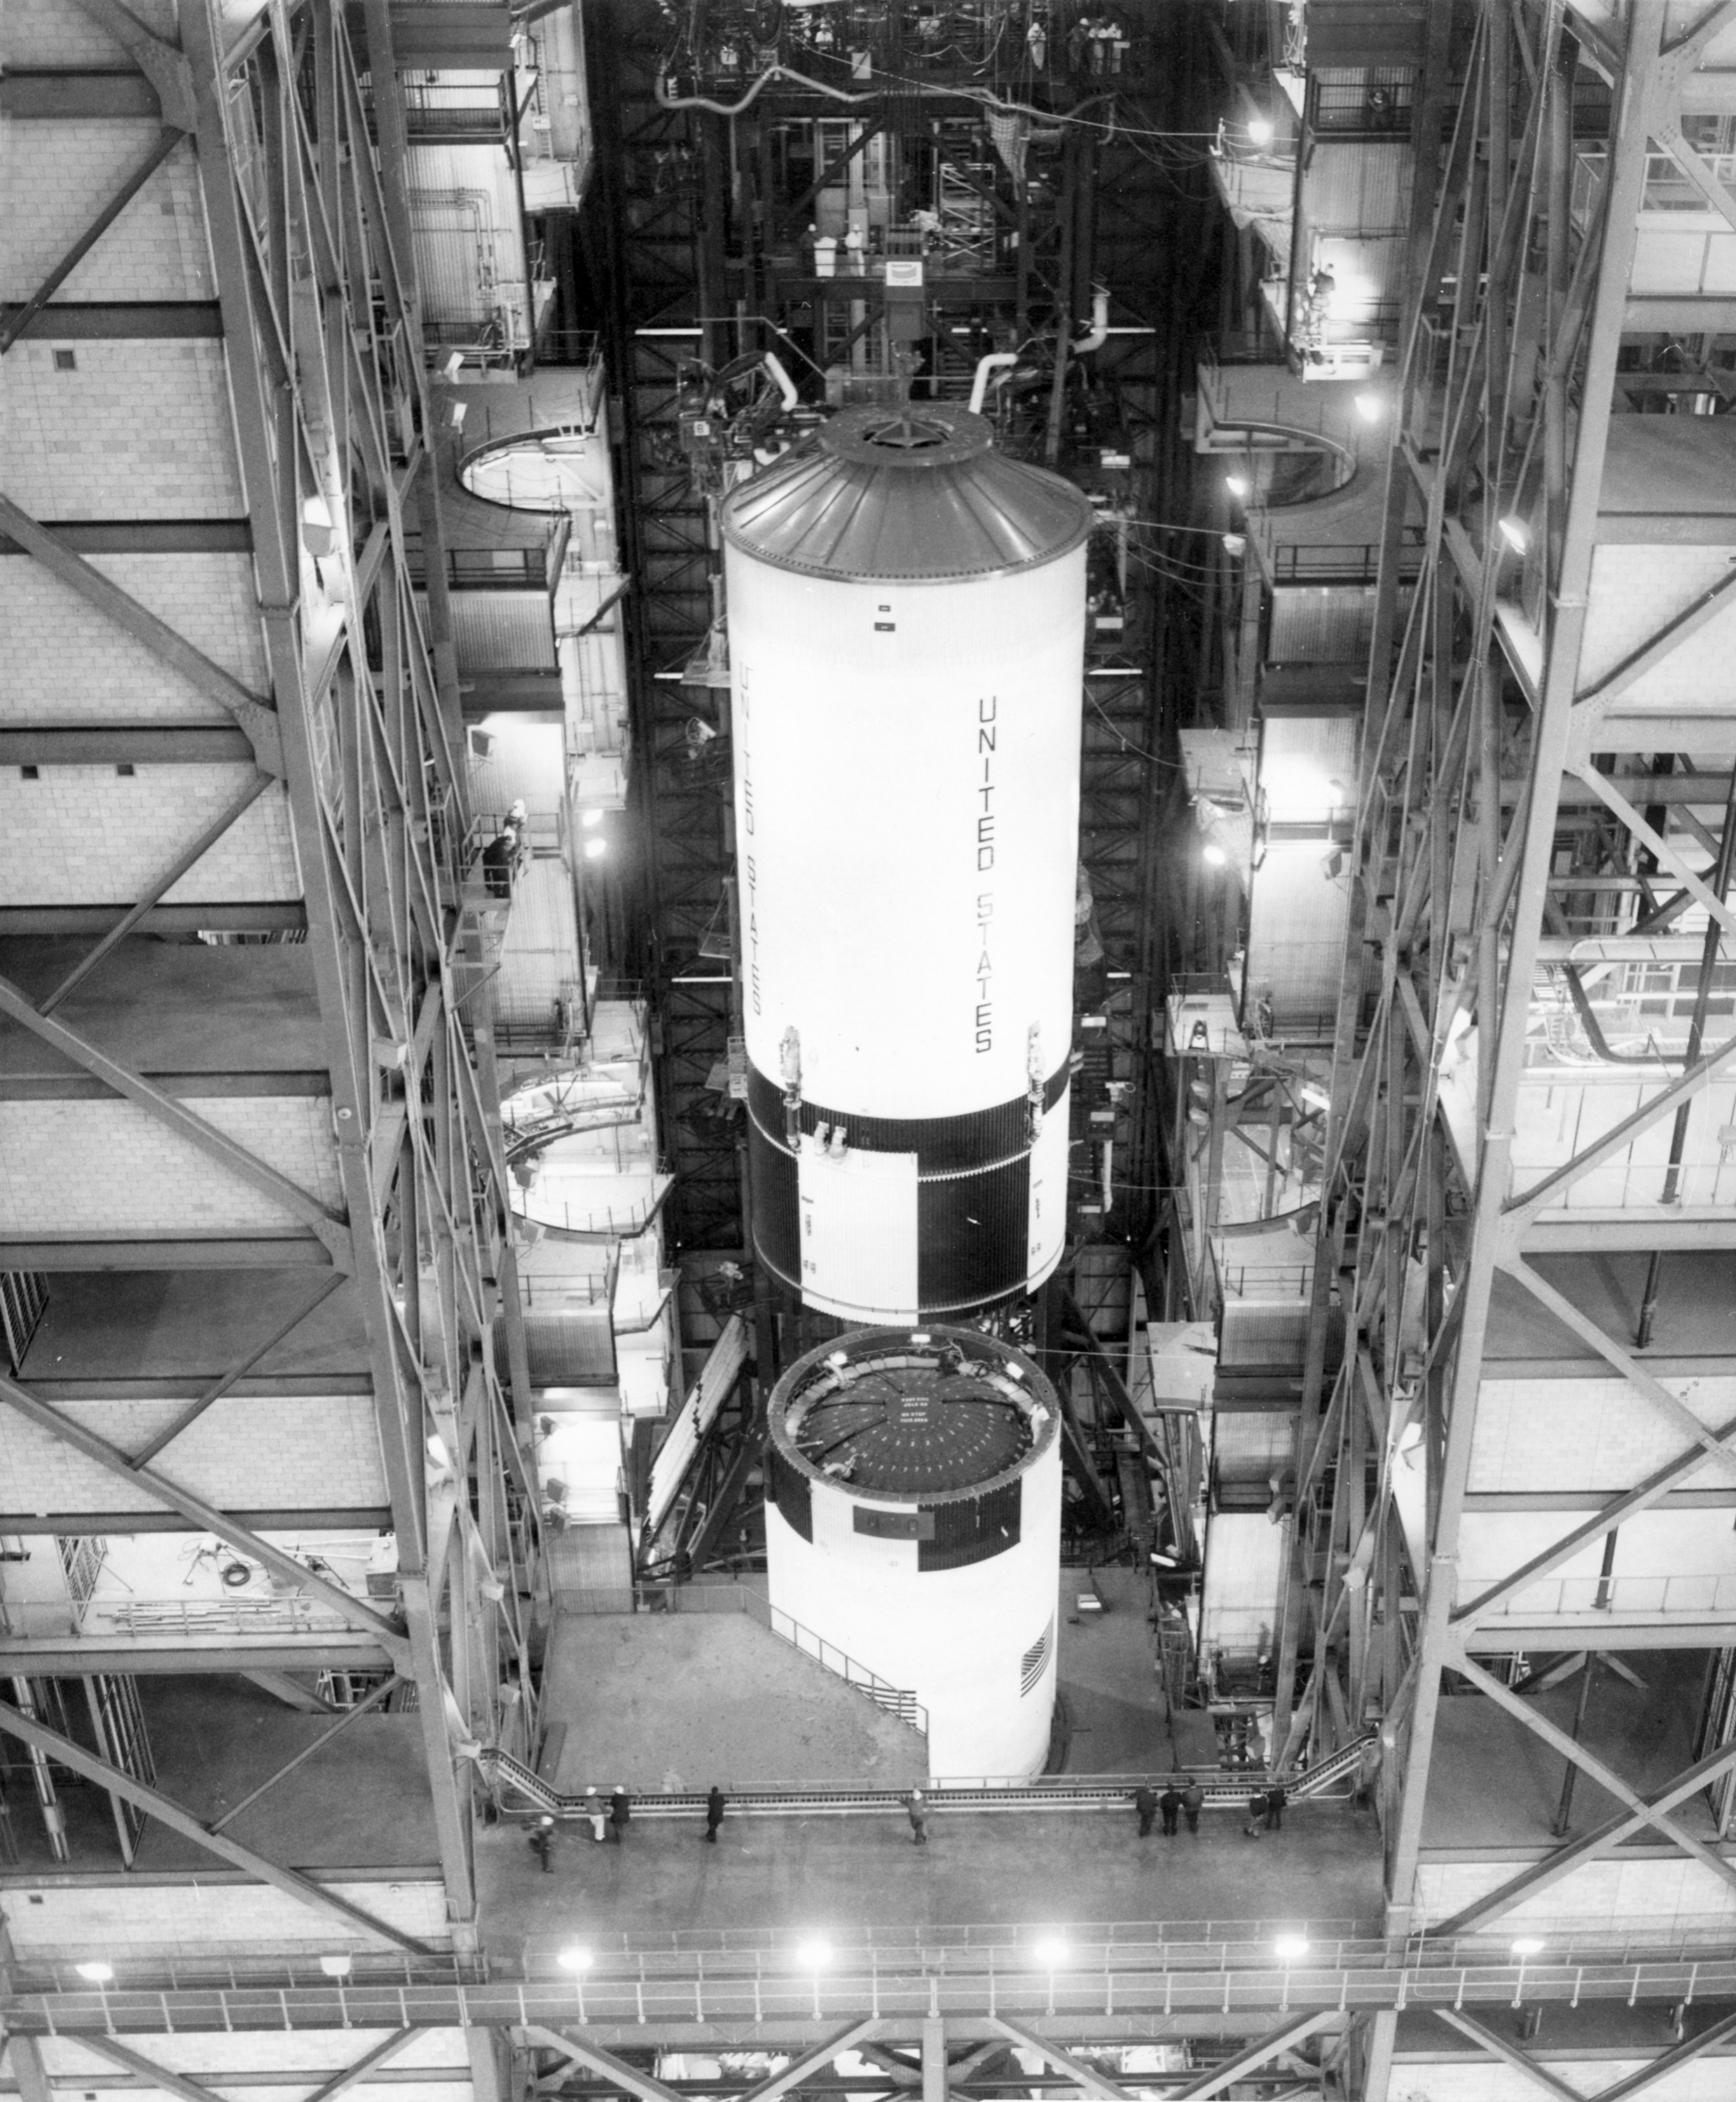 apollo missions objectives - photo #38